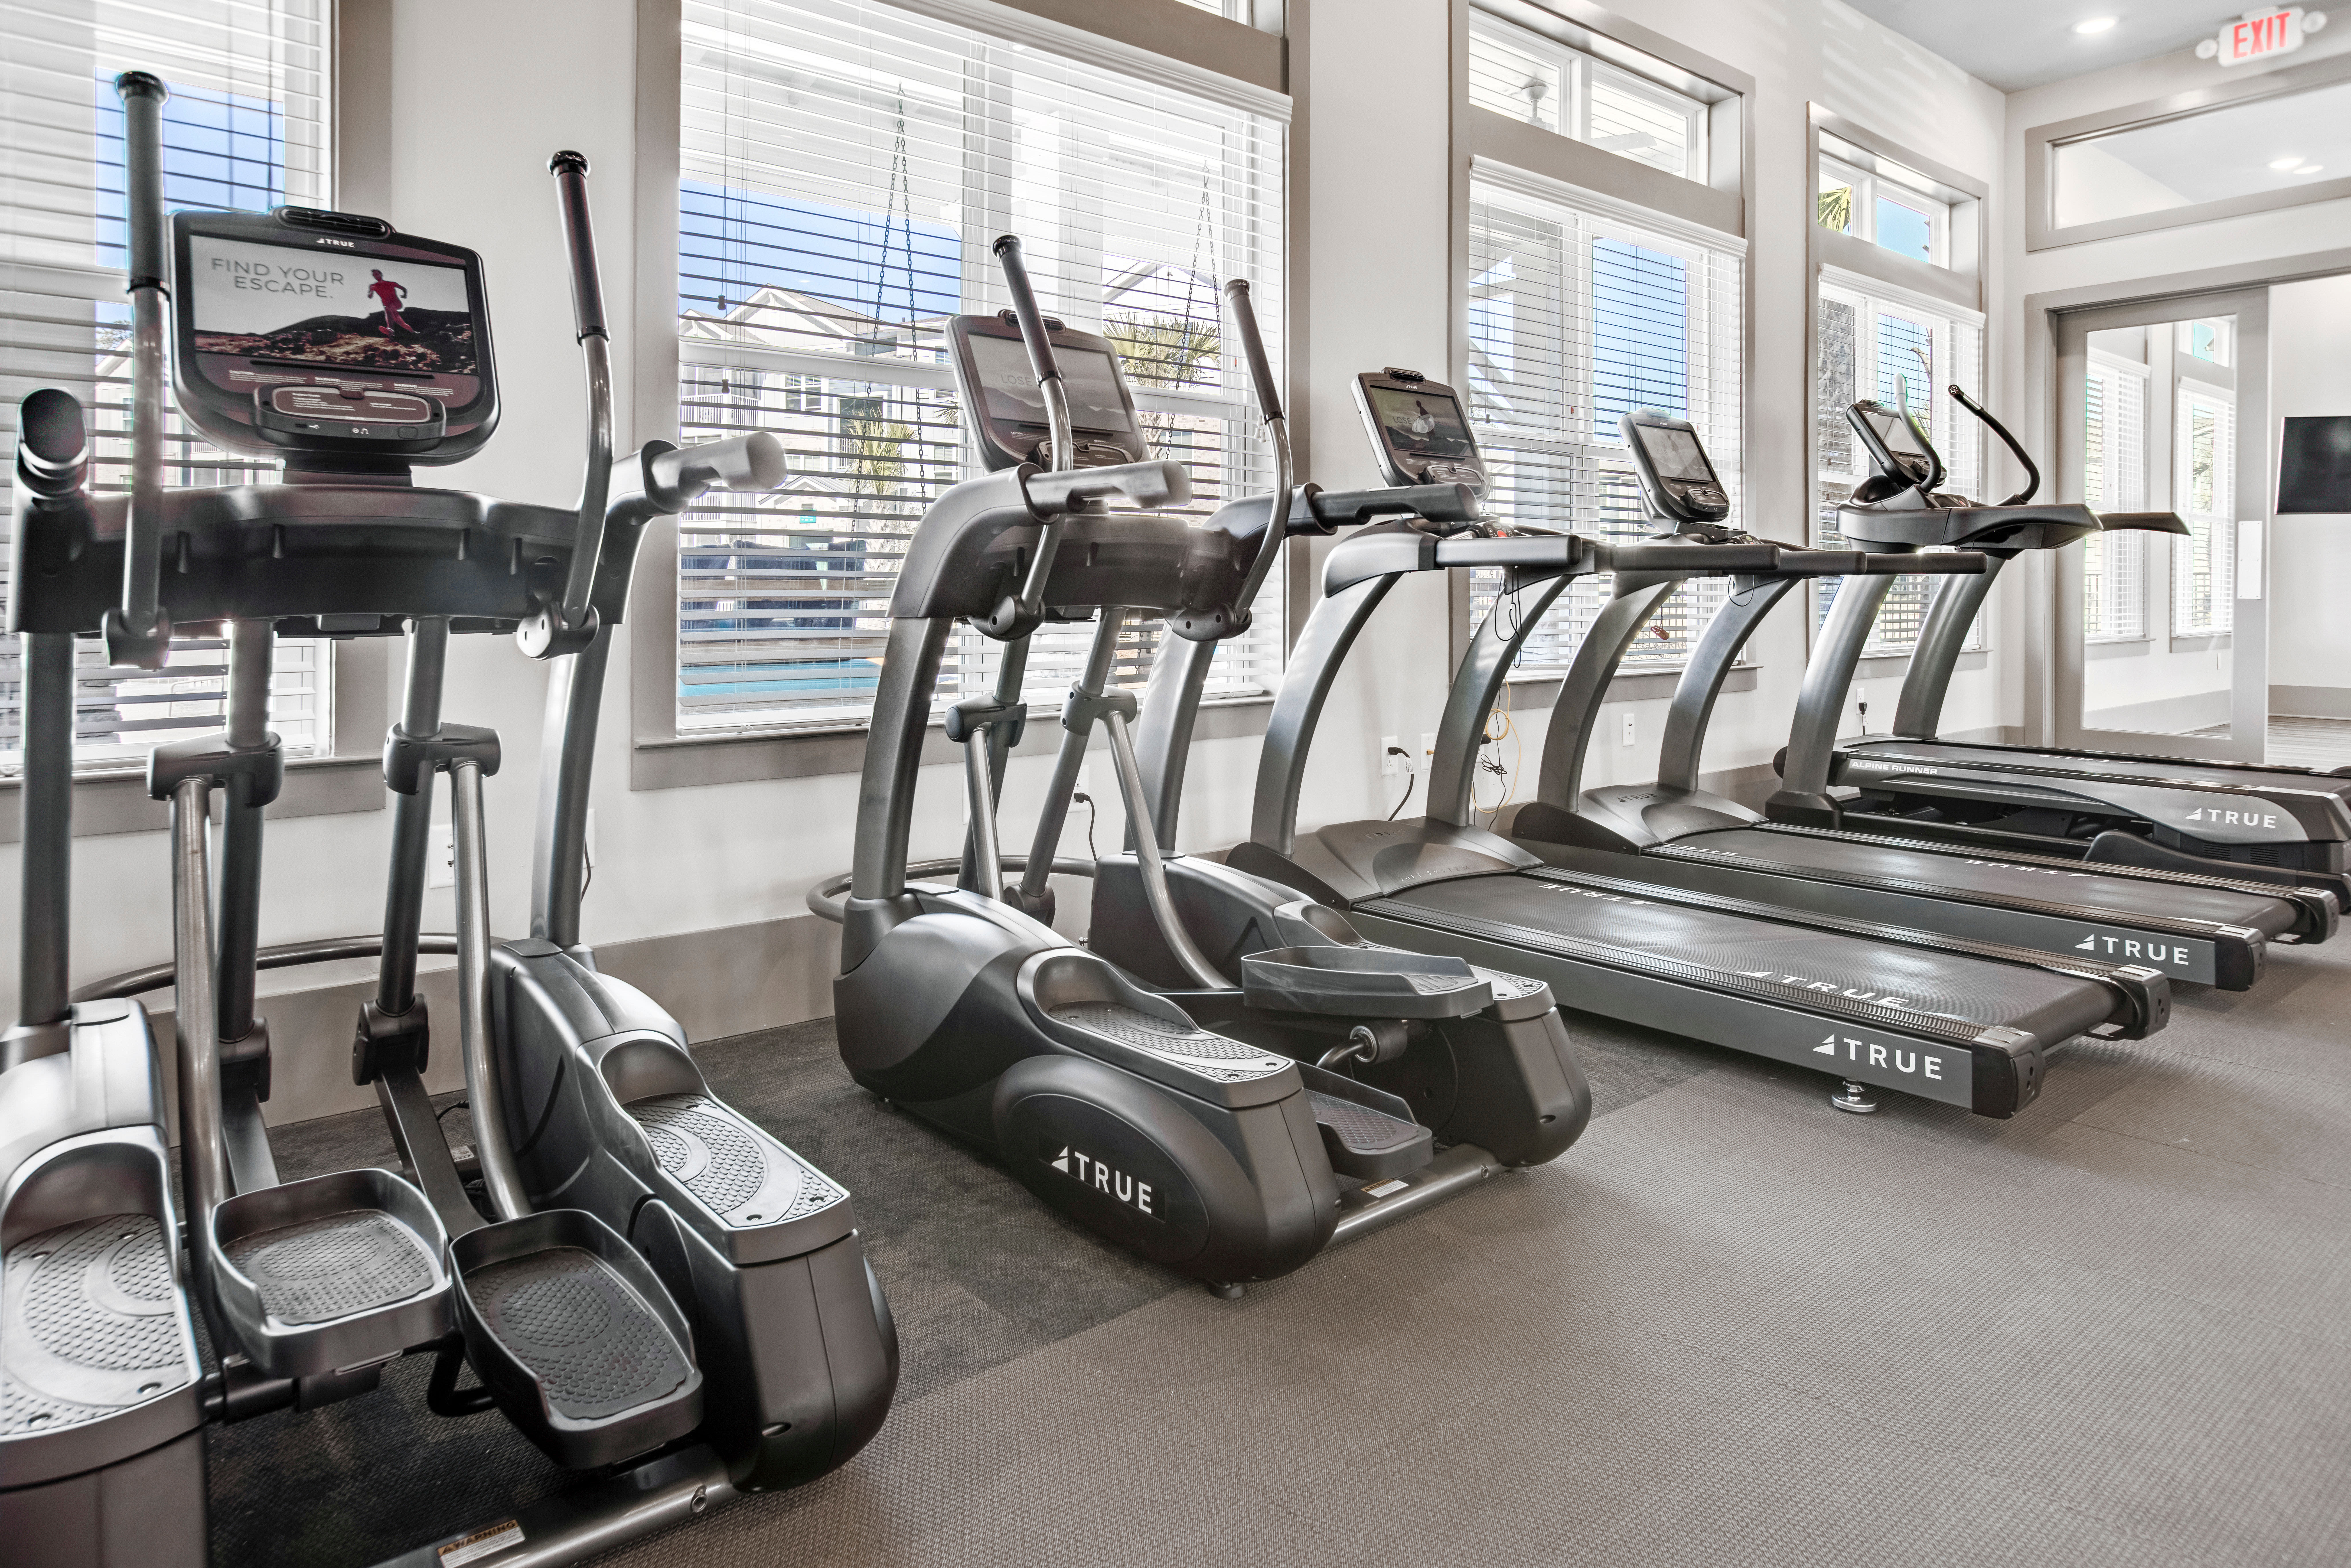 Full sized state of the art fitness center at South City Apartments in Summerville, South Carolina